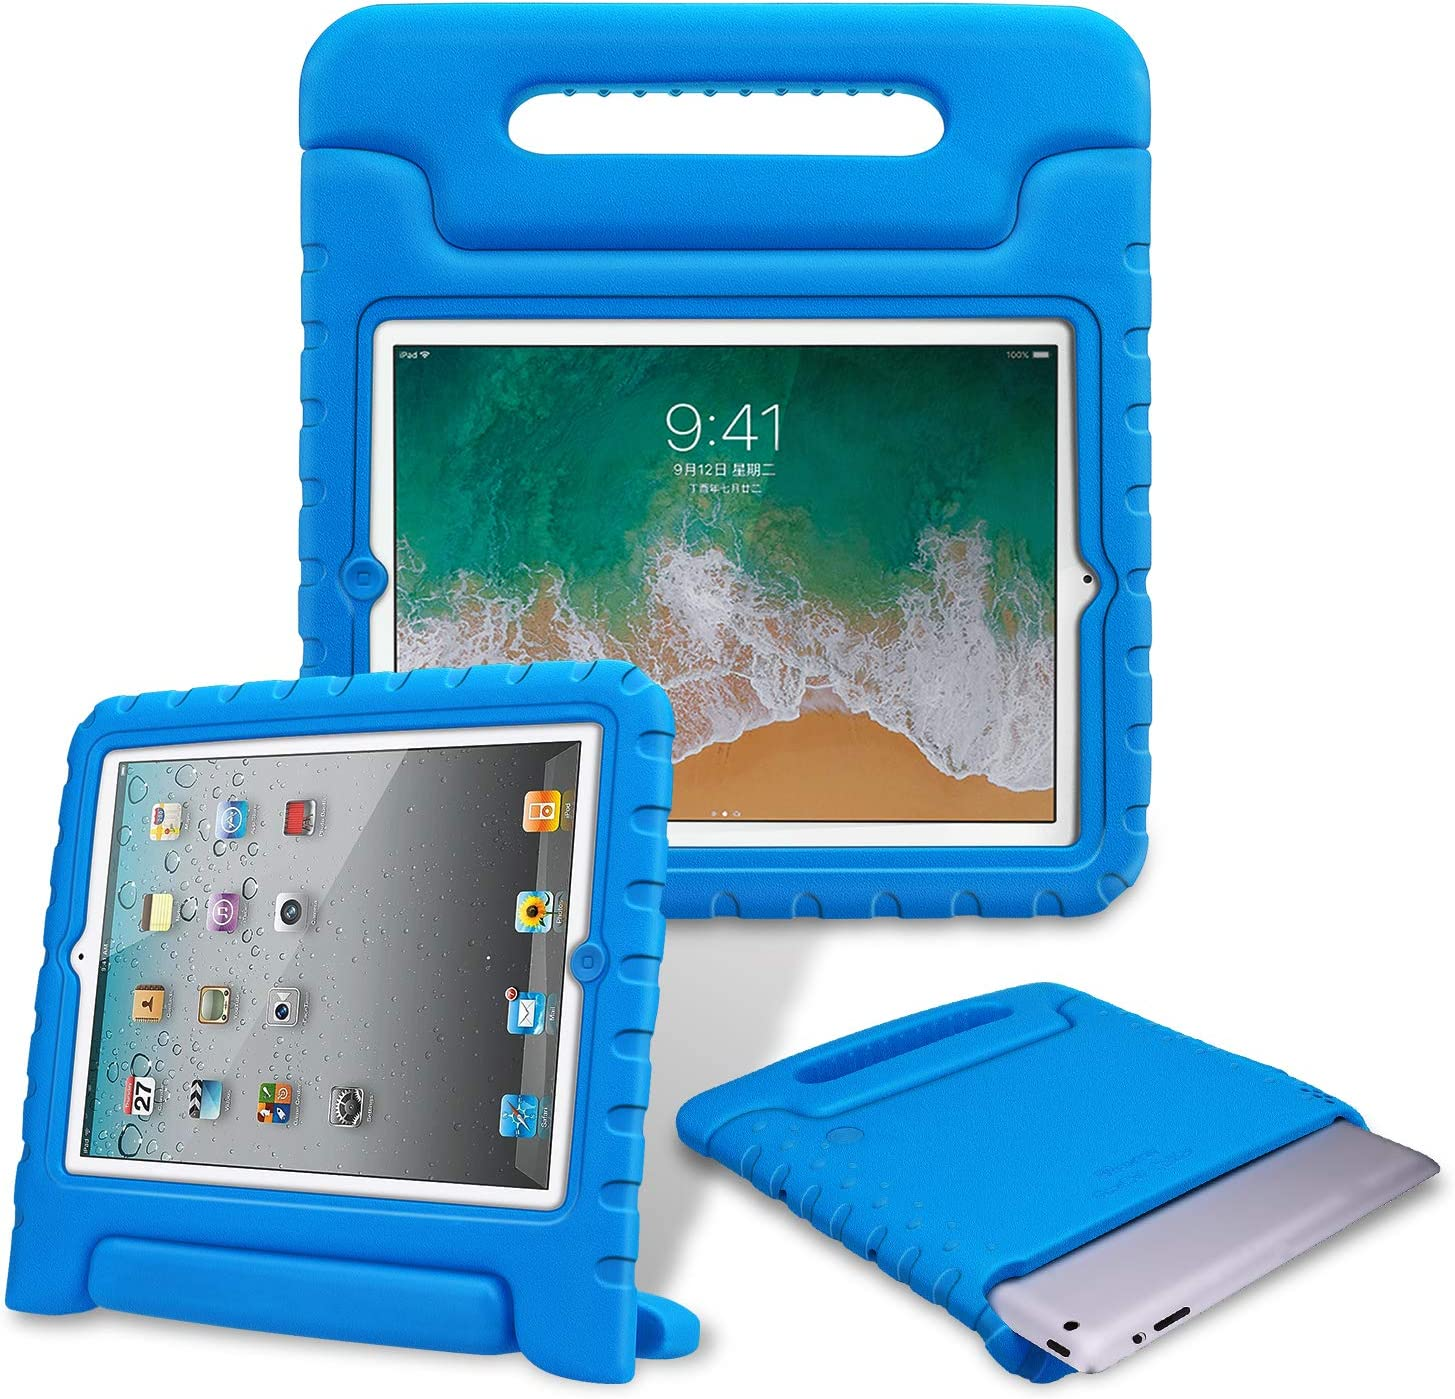 Fintie Kiddie Case for iPad 2/3/4 (Old Model) - Light Weight Shock Proof Convertible Handle Stand Kids Friendly for iPad 4th Generation with Retina Display, iPad 3 & iPad 2 - Blue